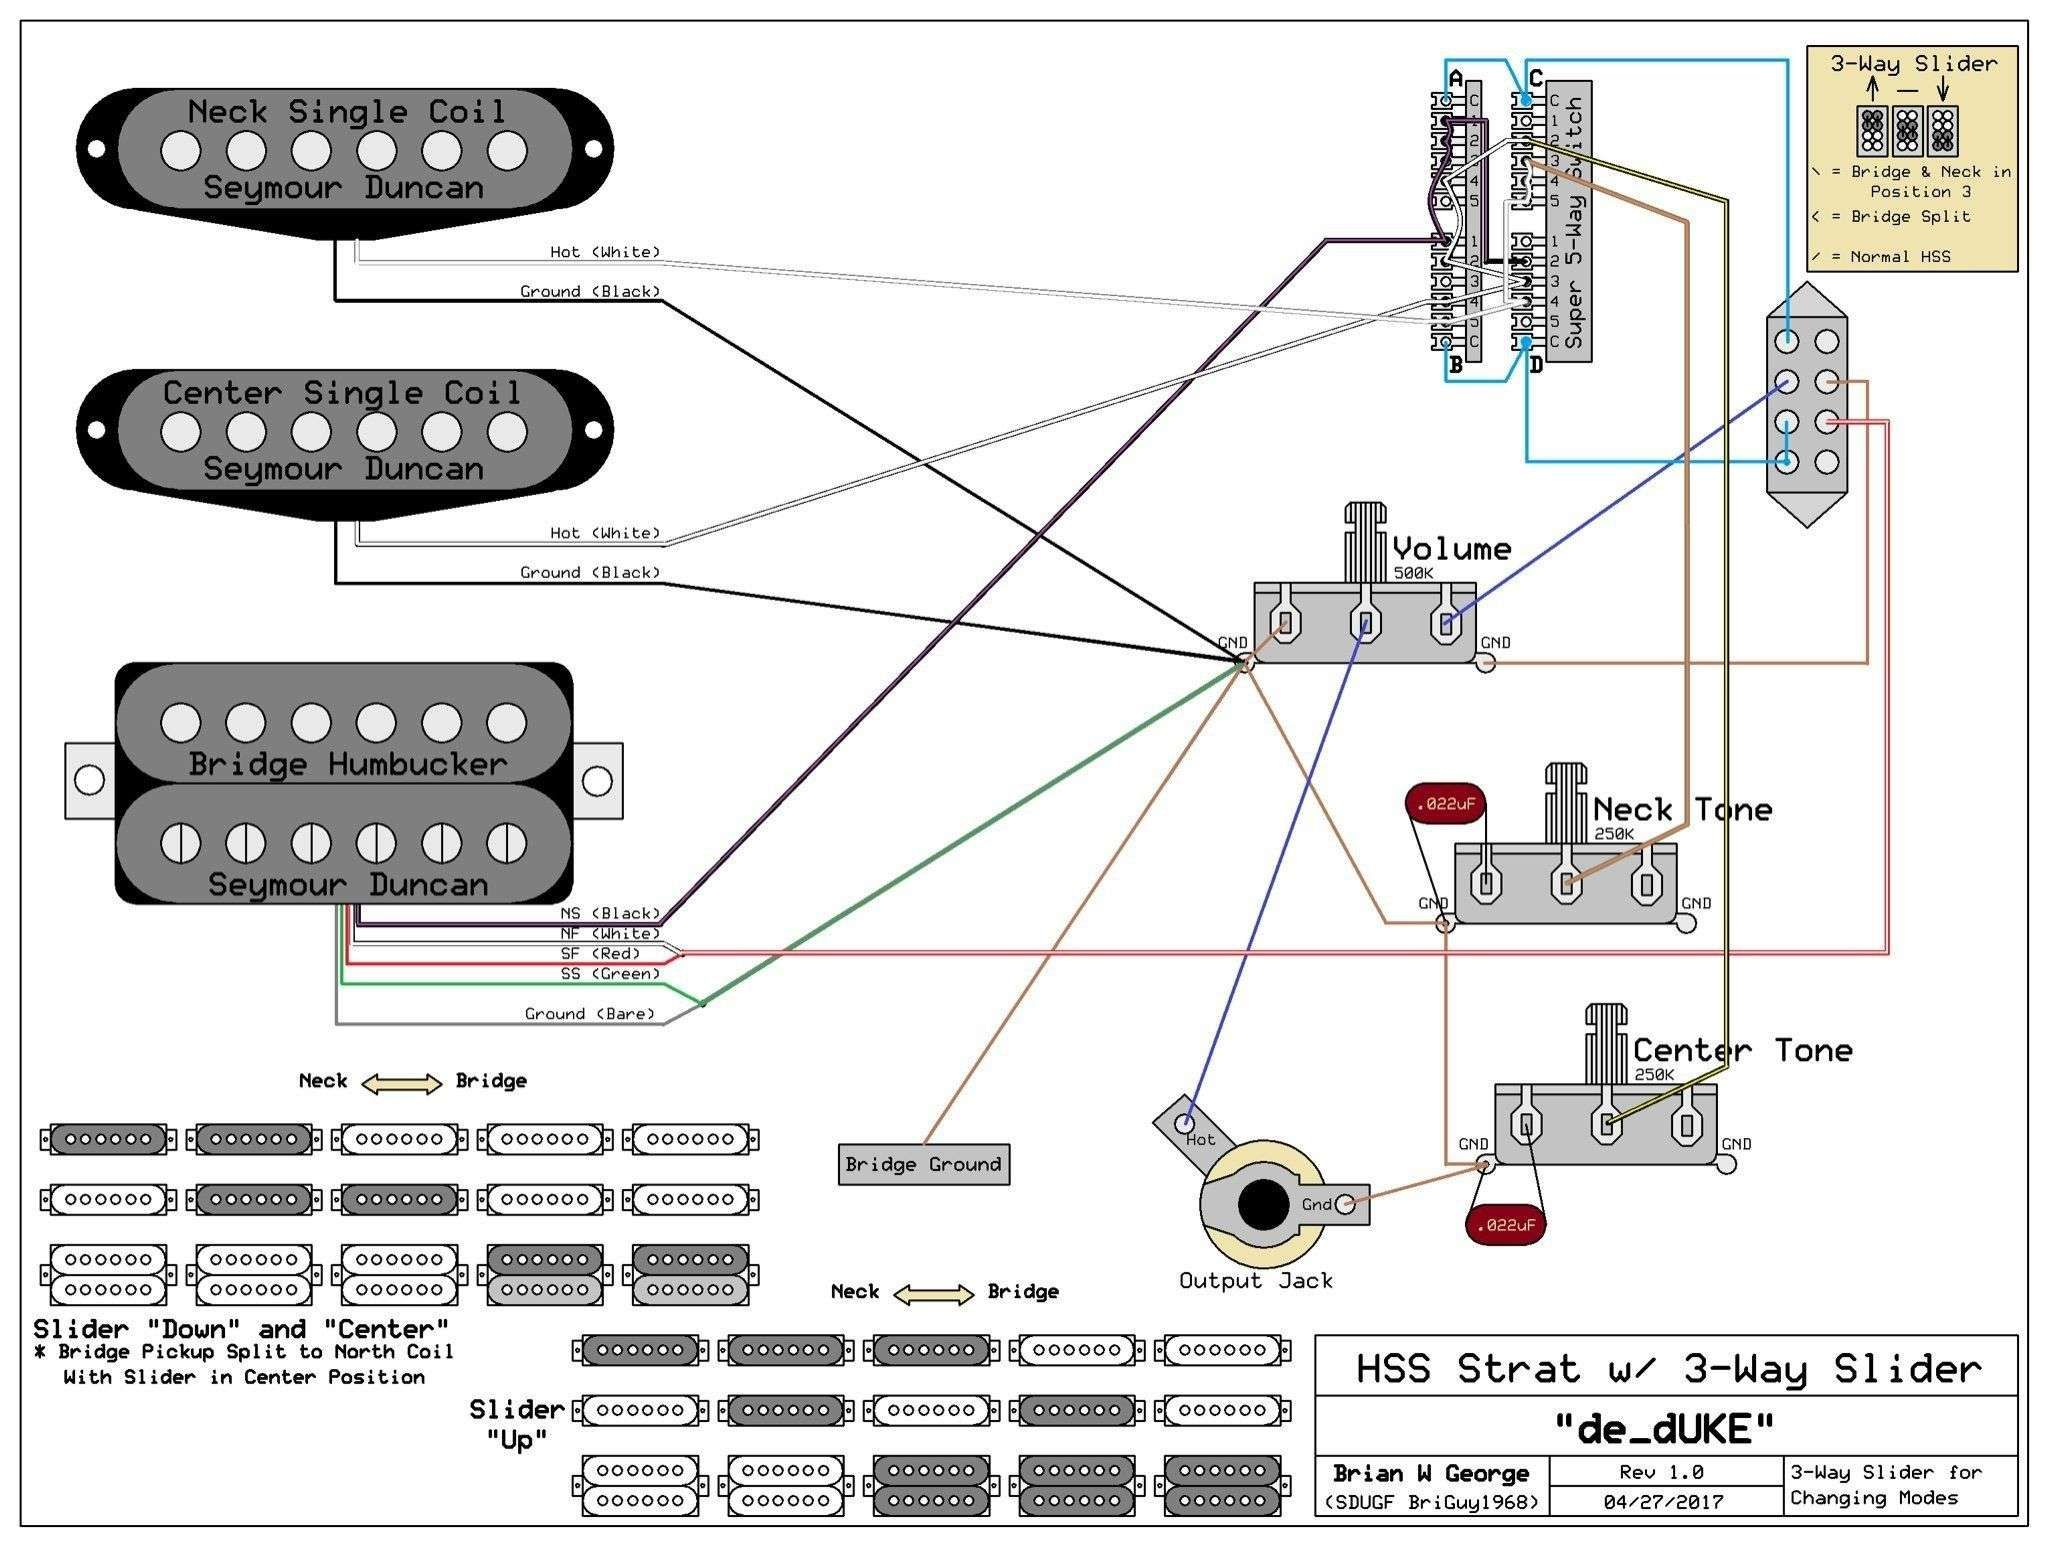 hight resolution of wiring diagram 3 way switch elegant wiring diagrams for strat fresh wiring diagram guitar 3 way switch